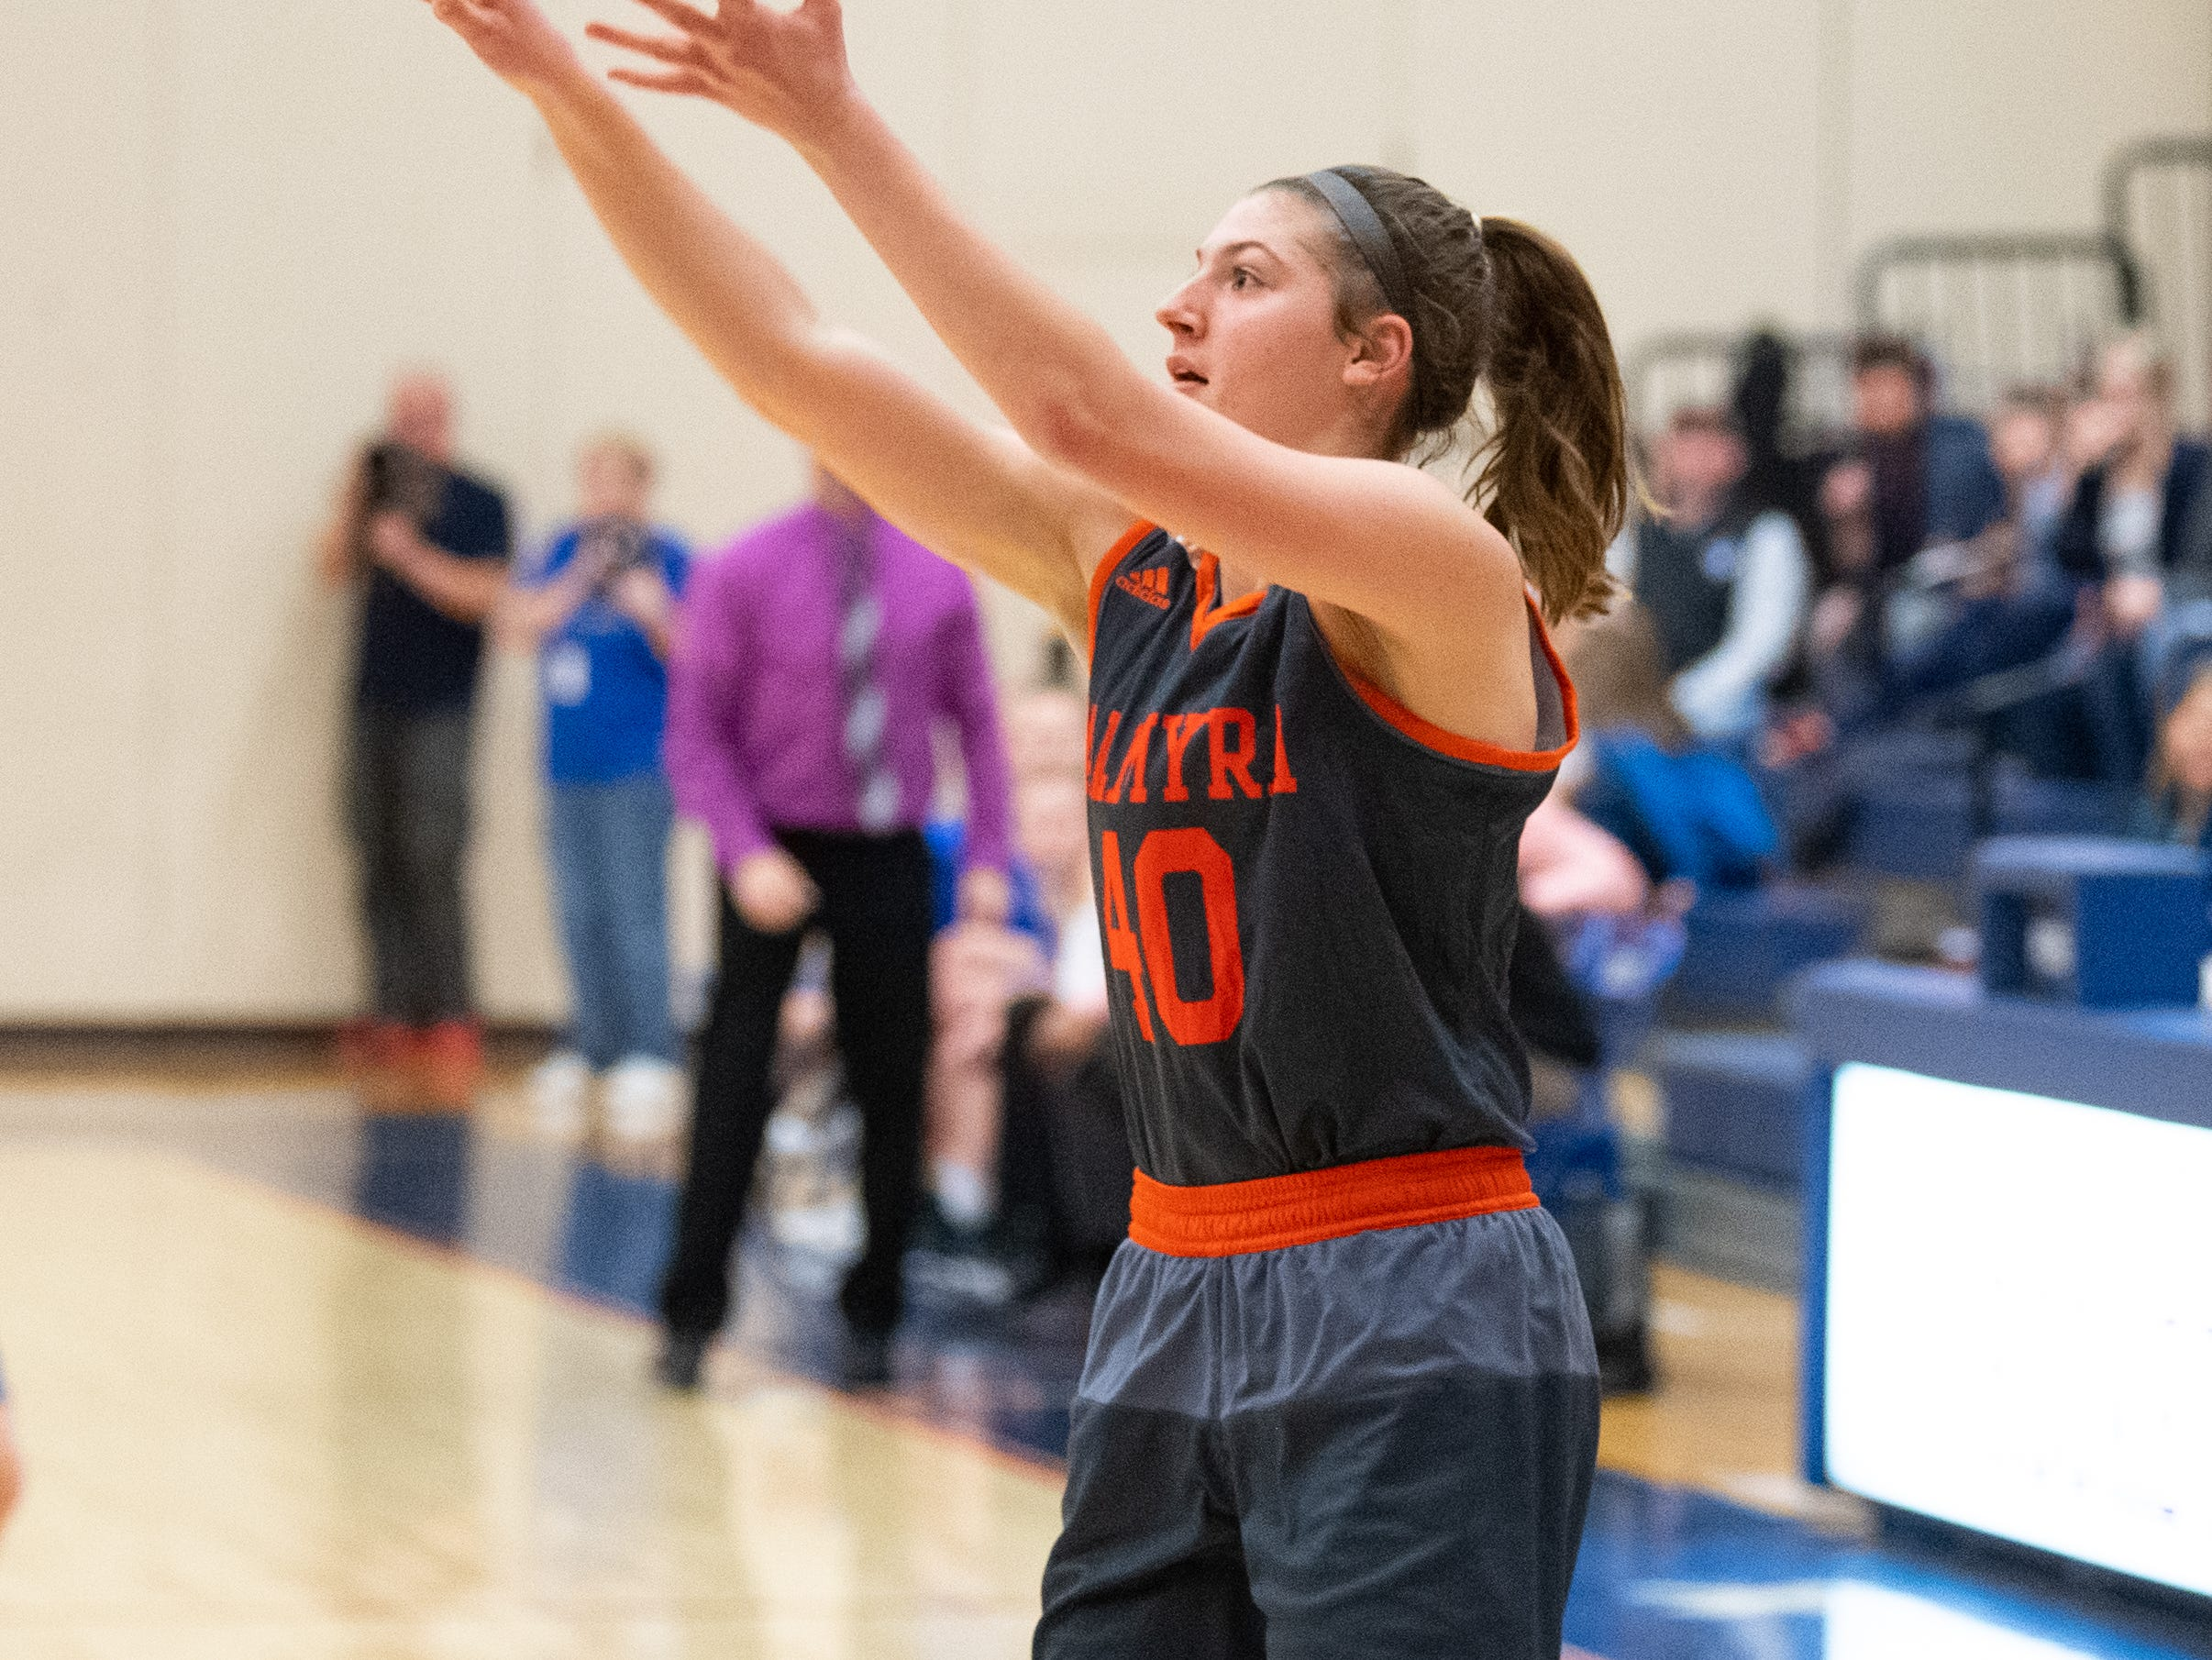 Katelyn Becker (40) shoots a jump shot during the District 3 Class 5A girls' basketball quarterfinal between Spring Grove and Palmyra, Friday, February 22, 2019 at Spring Grove Area High School. The Cougars defeated the Rockets 43 to 41.